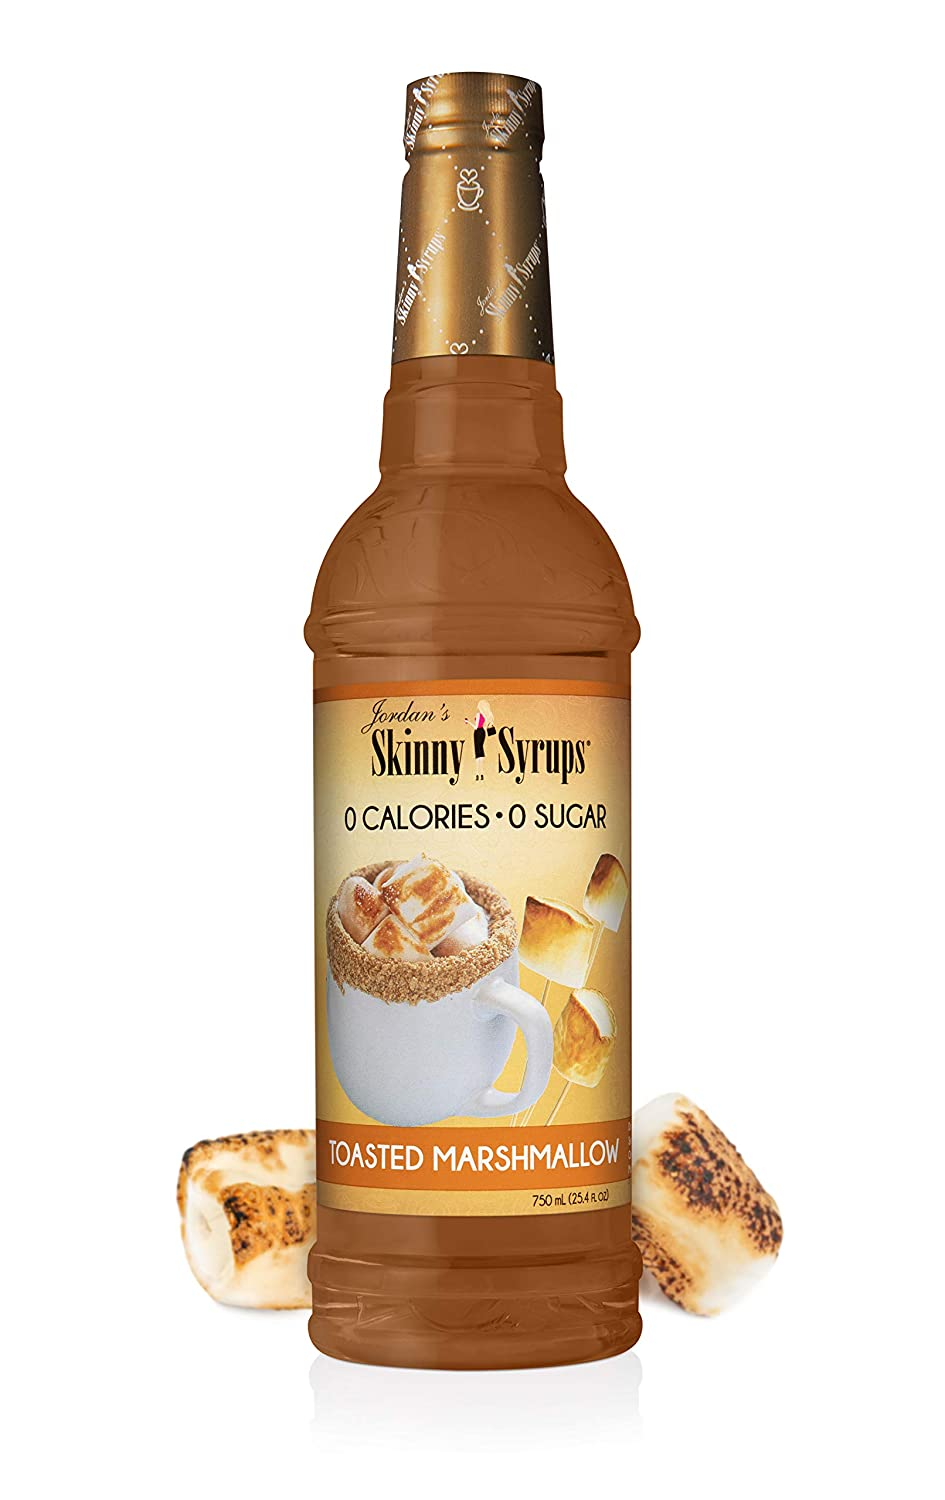 Jordan's Skinny Syrups Toasted Marshmallow, Sugar Free Flavoring Syrup, 25.4 Ounce Bottle